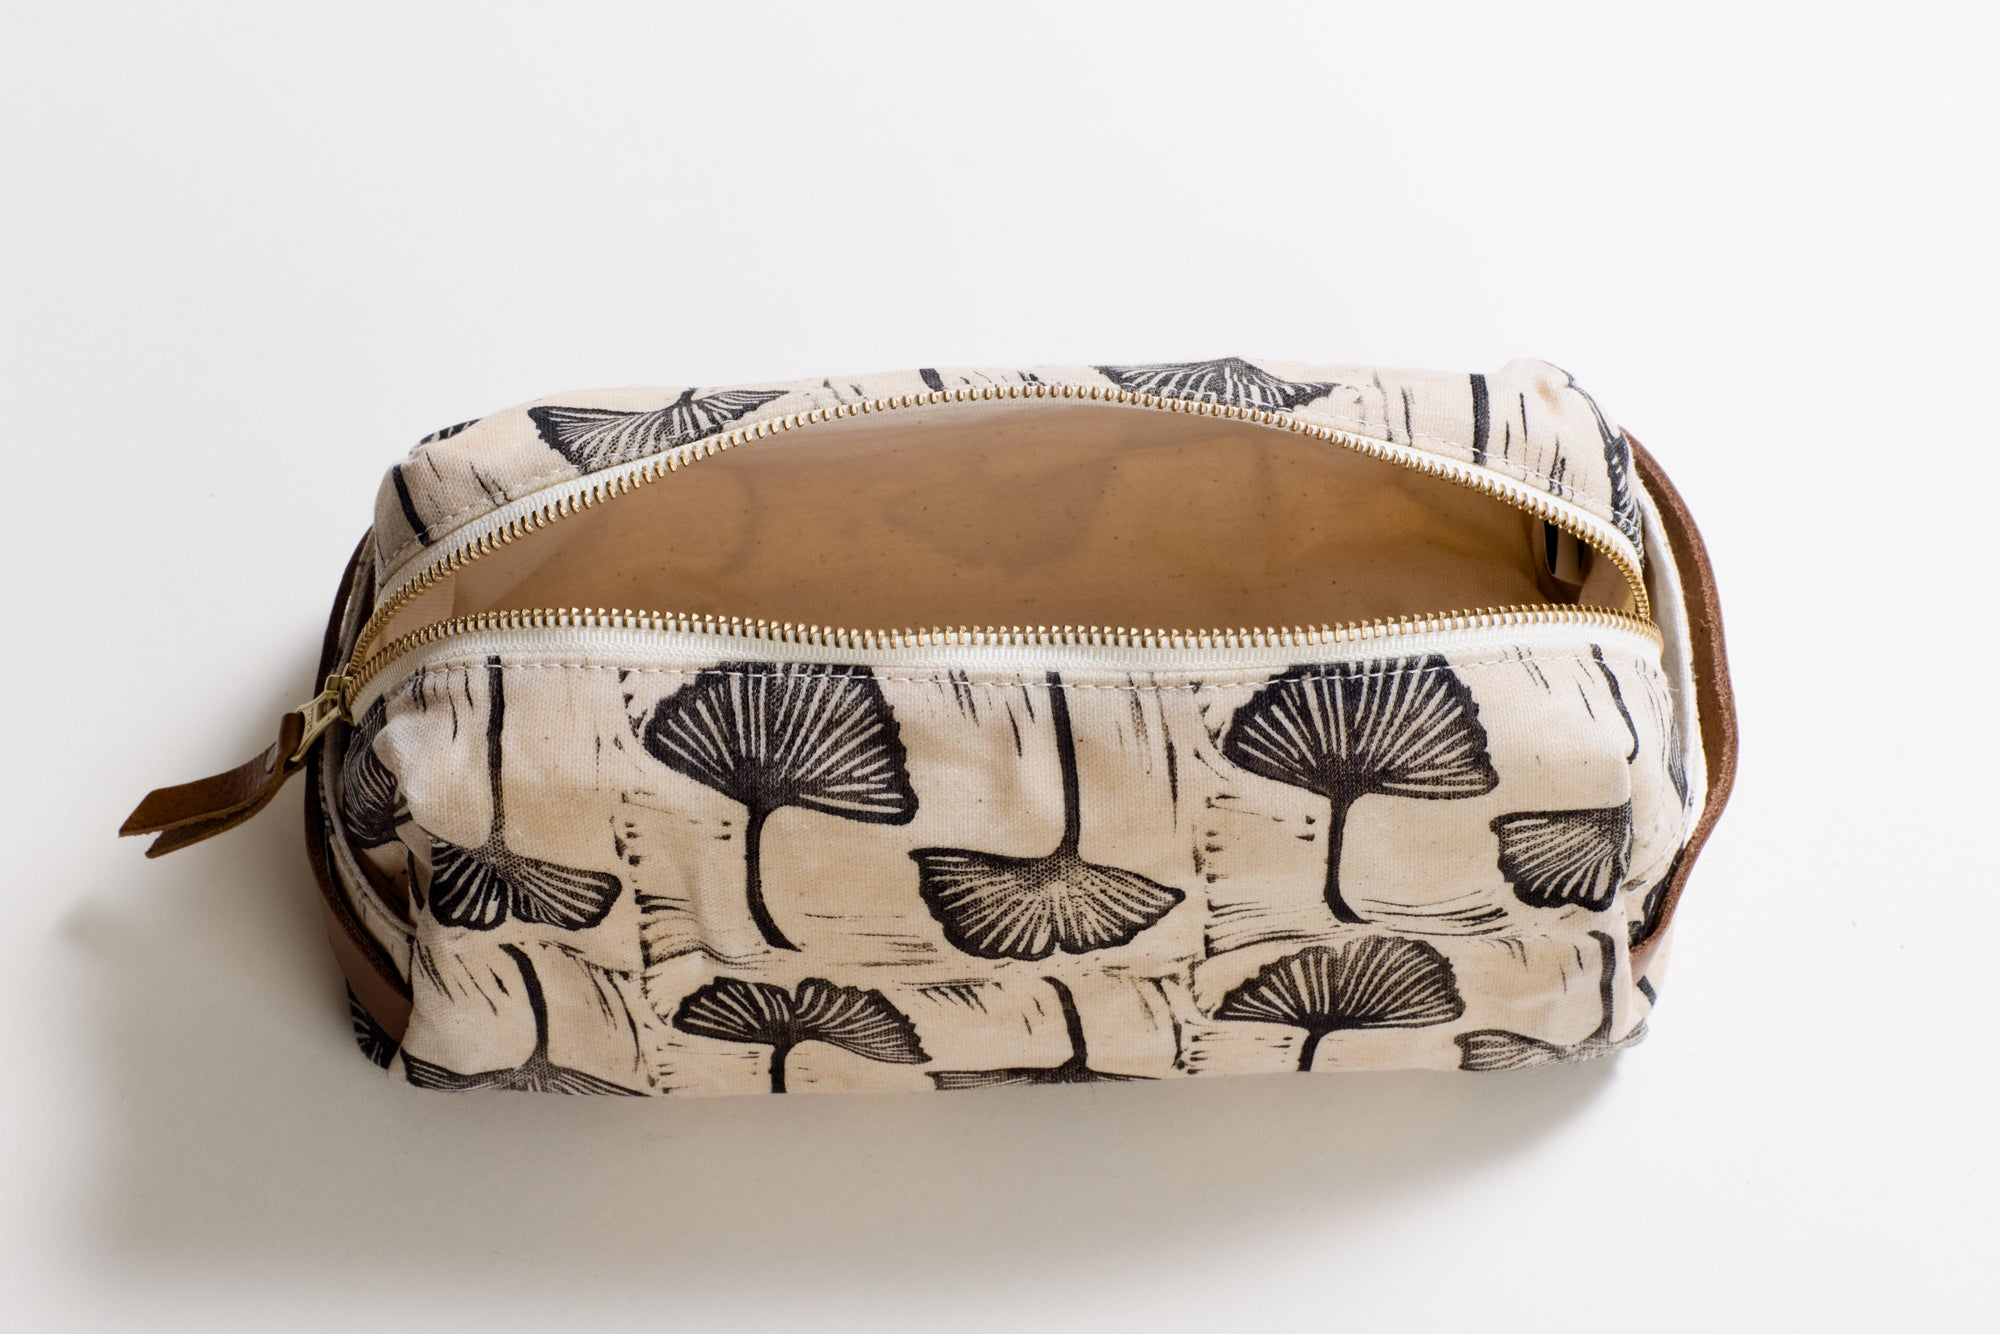 The Dopp Kit Gingko in Black